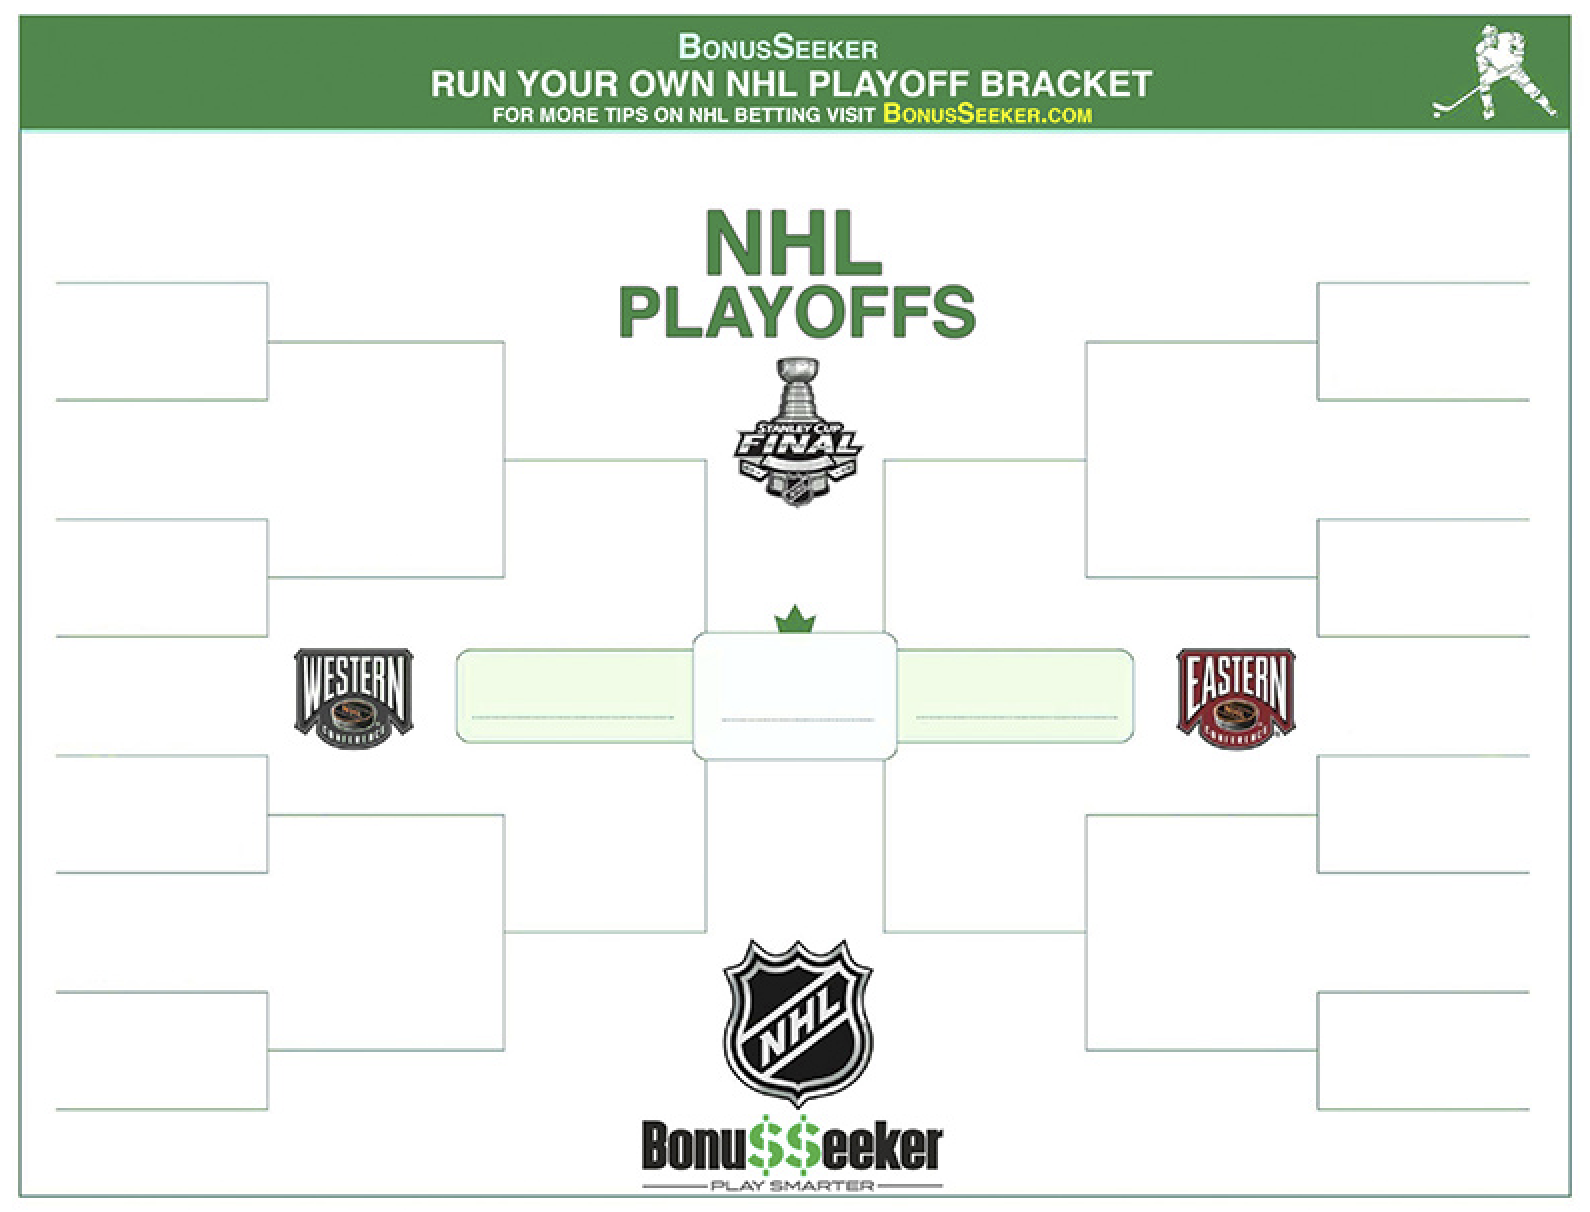 Nhl Playoffs Bracket 2020 Printable In 2020 Nhl Playoffs Playoffs Nhl